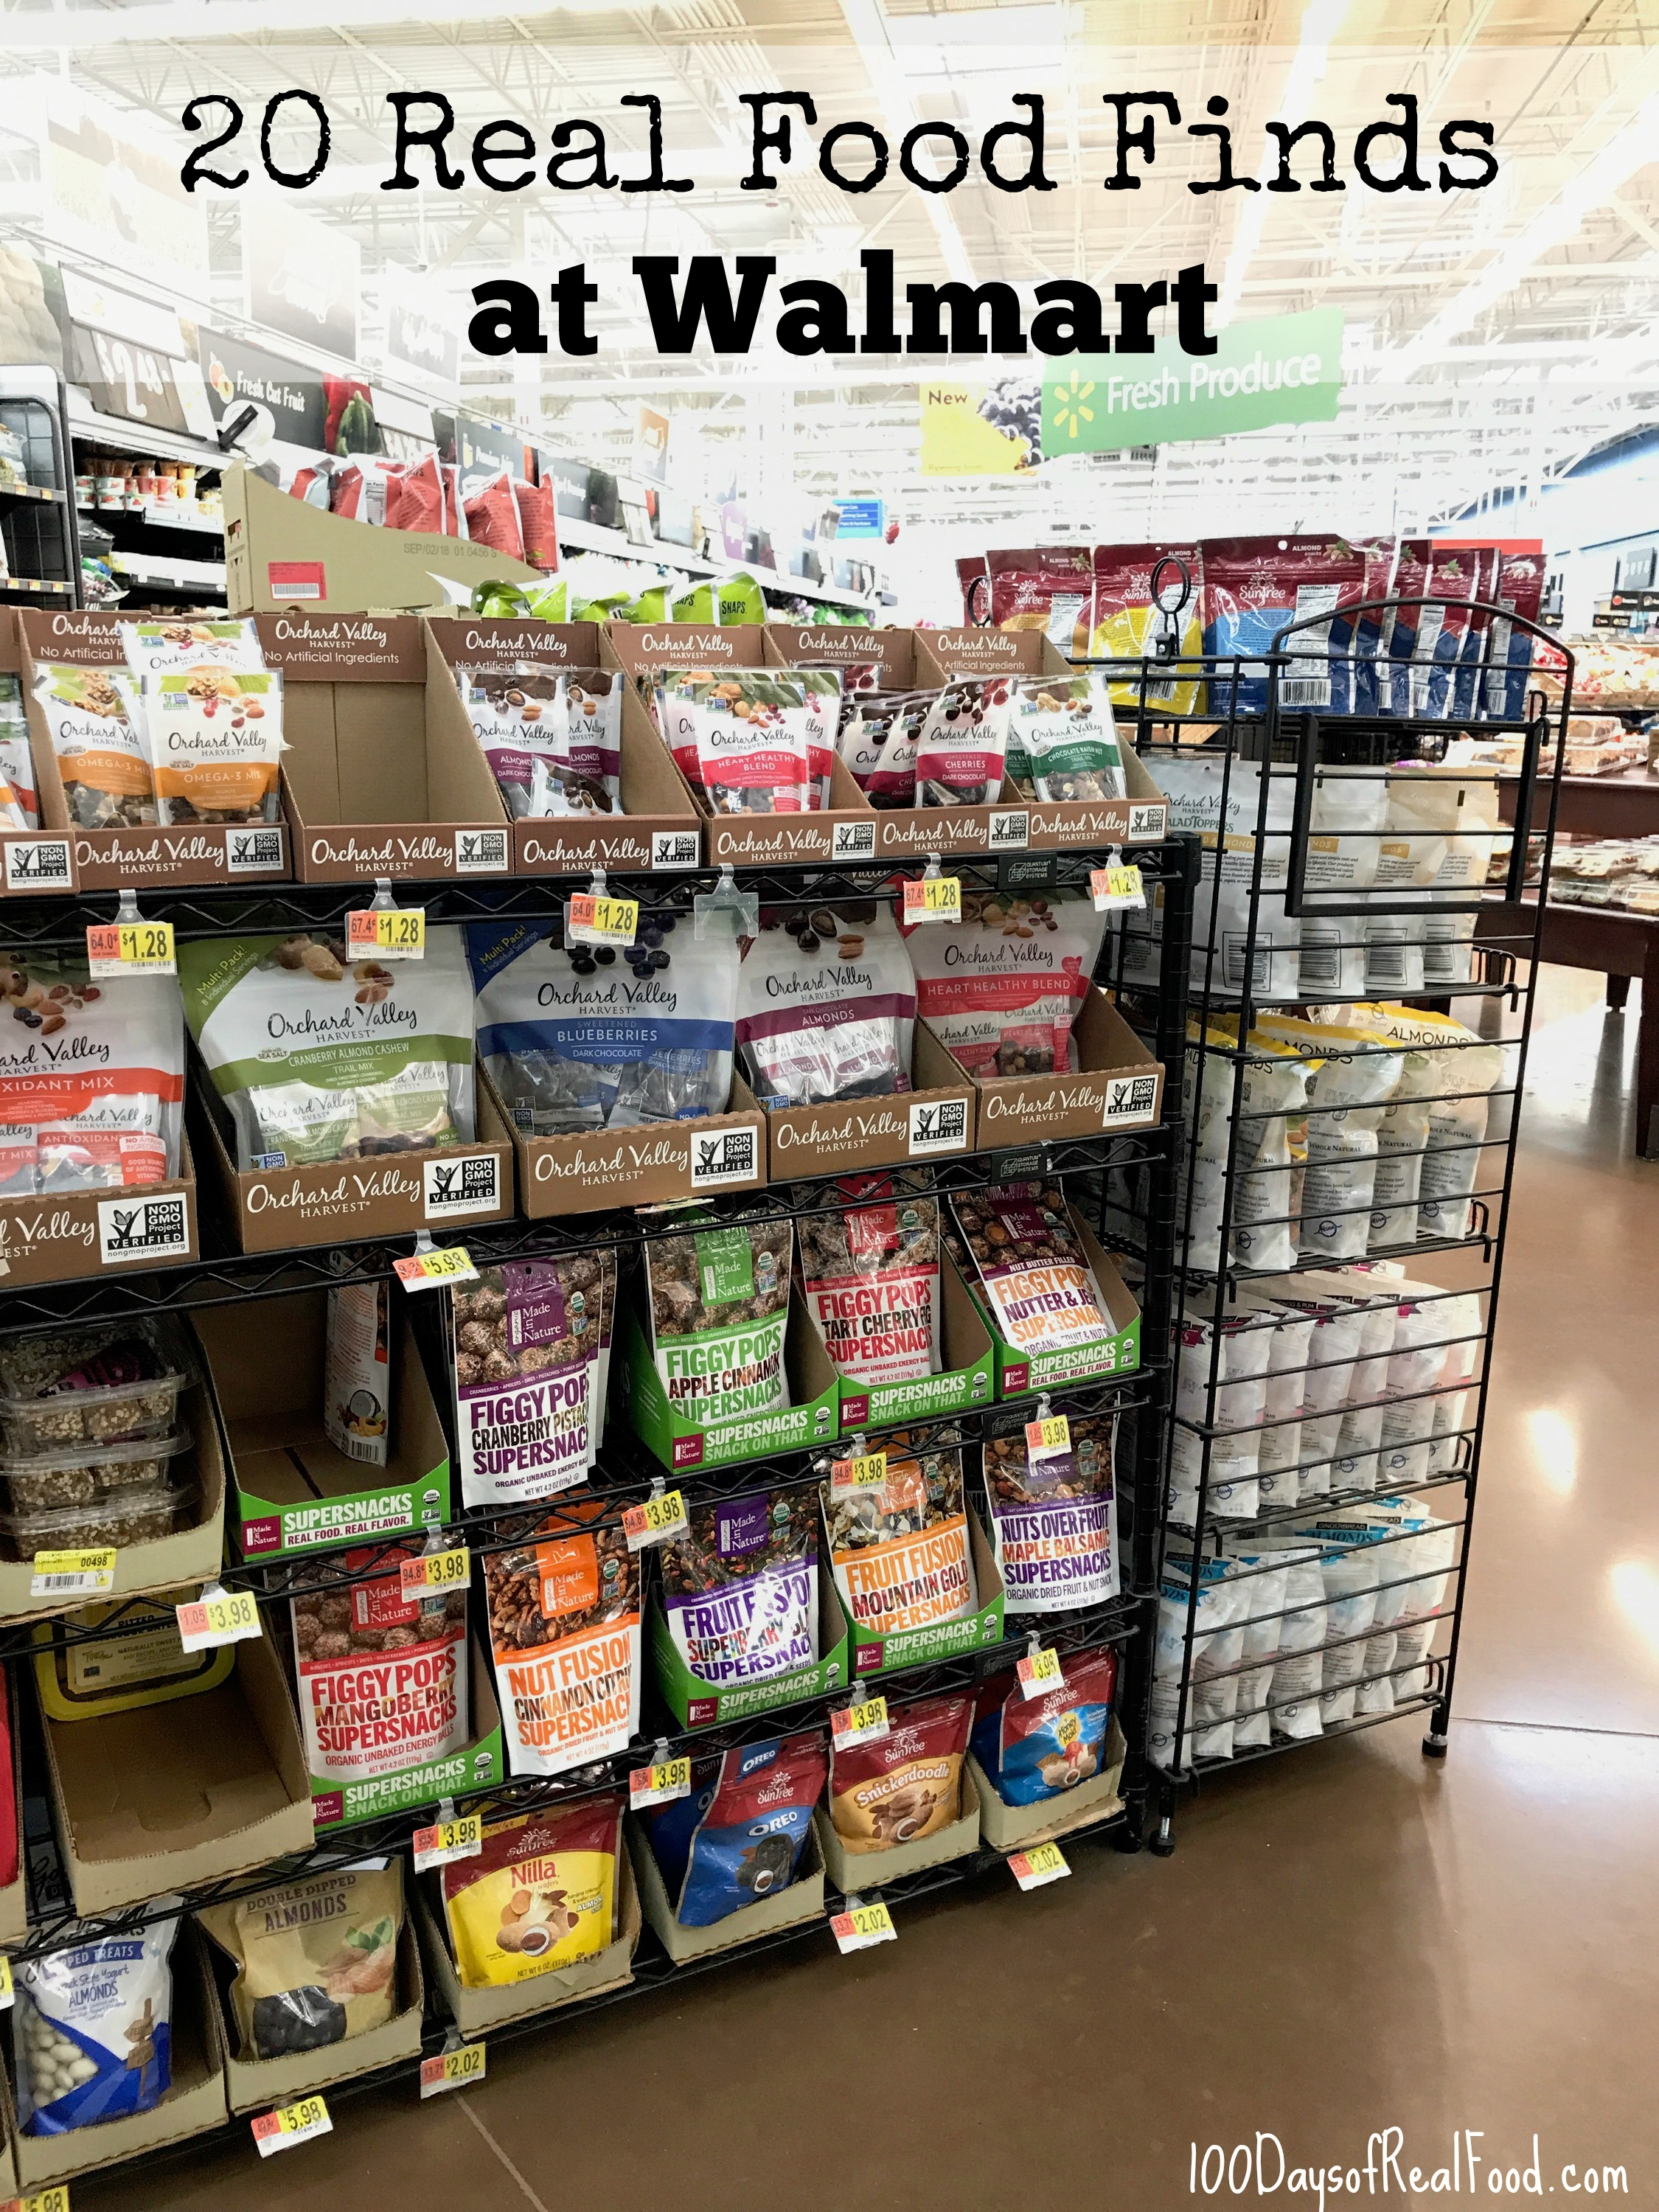 20 Real Food Finds at Walmart